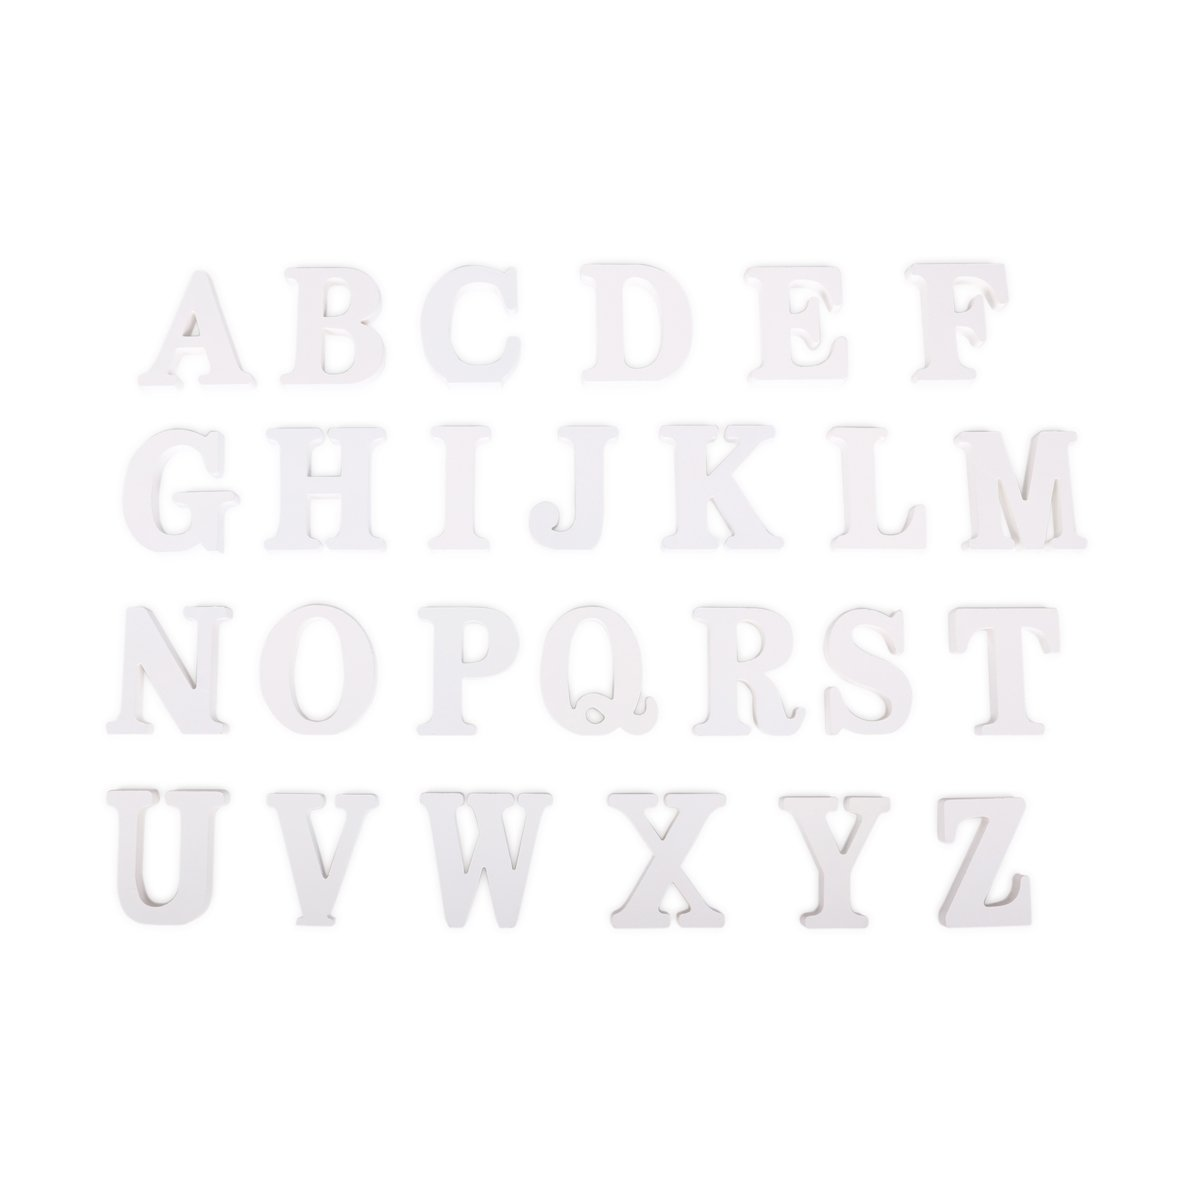 DODOING Decorative Wood Letters, Hanging Wall 26 Letters DIY Wooden Alphabet Ornaments Crafts Wall Plaque Letter for Children Baby Name Bedroom Office Wedding Brithday Party Home Decor White